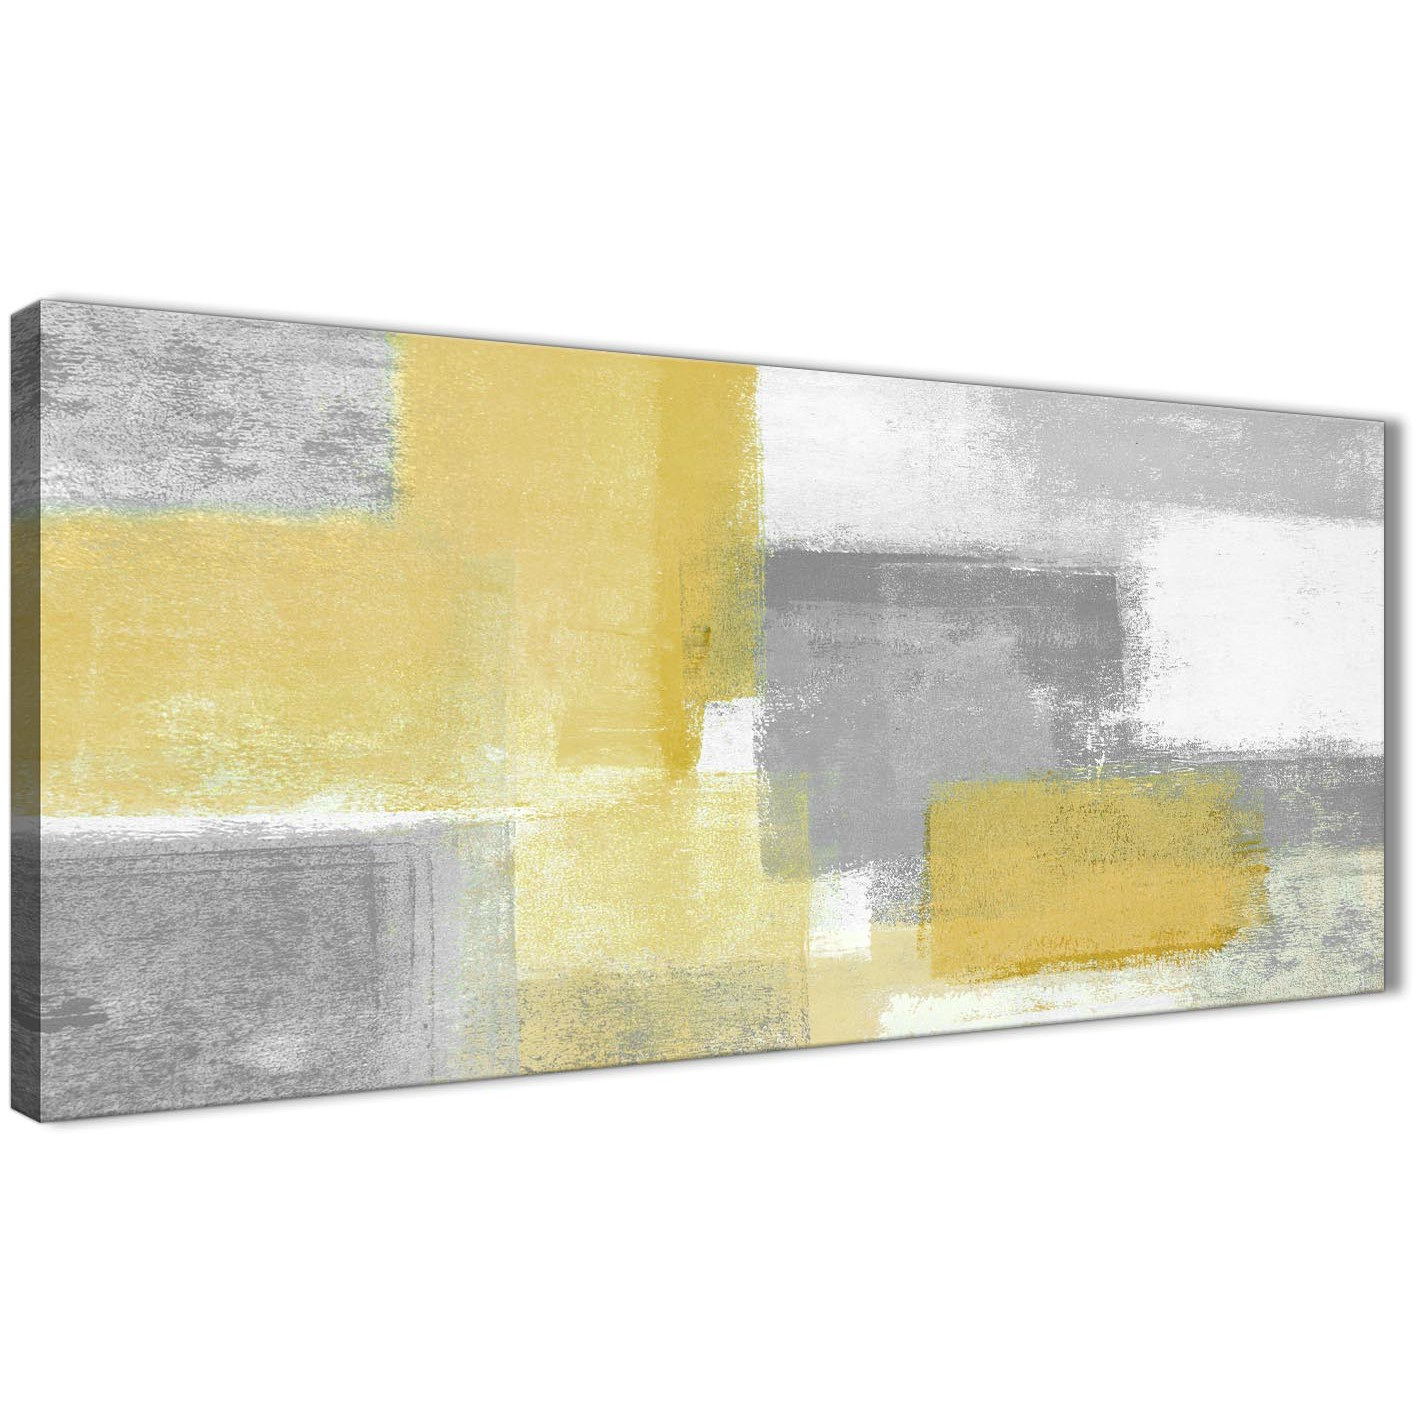 Panoramic Mustard Yellow Grey Living Room Canvas Wall Art Accessories    Abstract 1367   120cm Print Display Gallery Item 1 ... Part 43